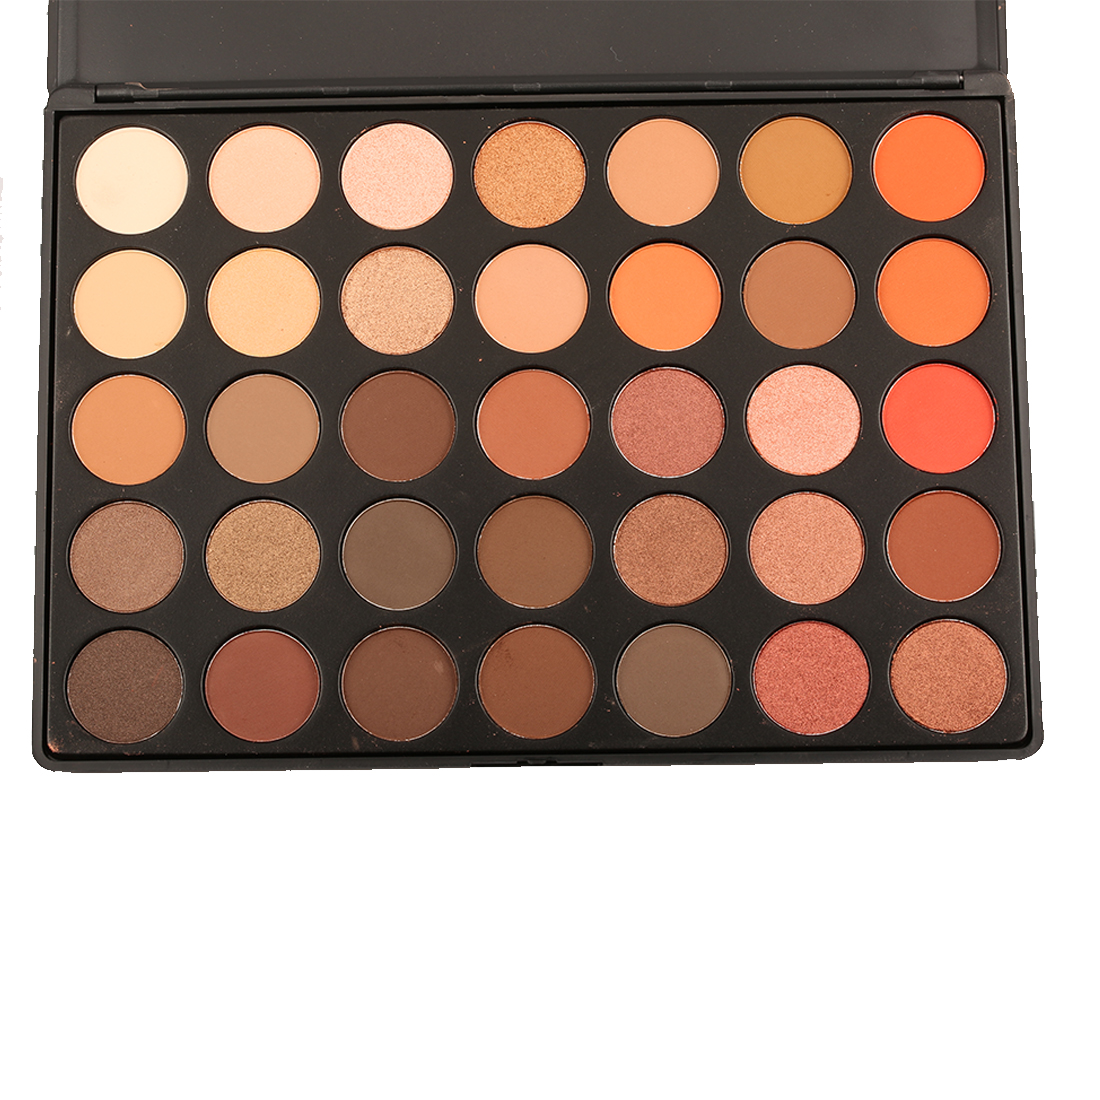 Top Quality Professional 35 Color Eye Shadow Palette Cosmetic Makeup Set Eye Shadow For Women